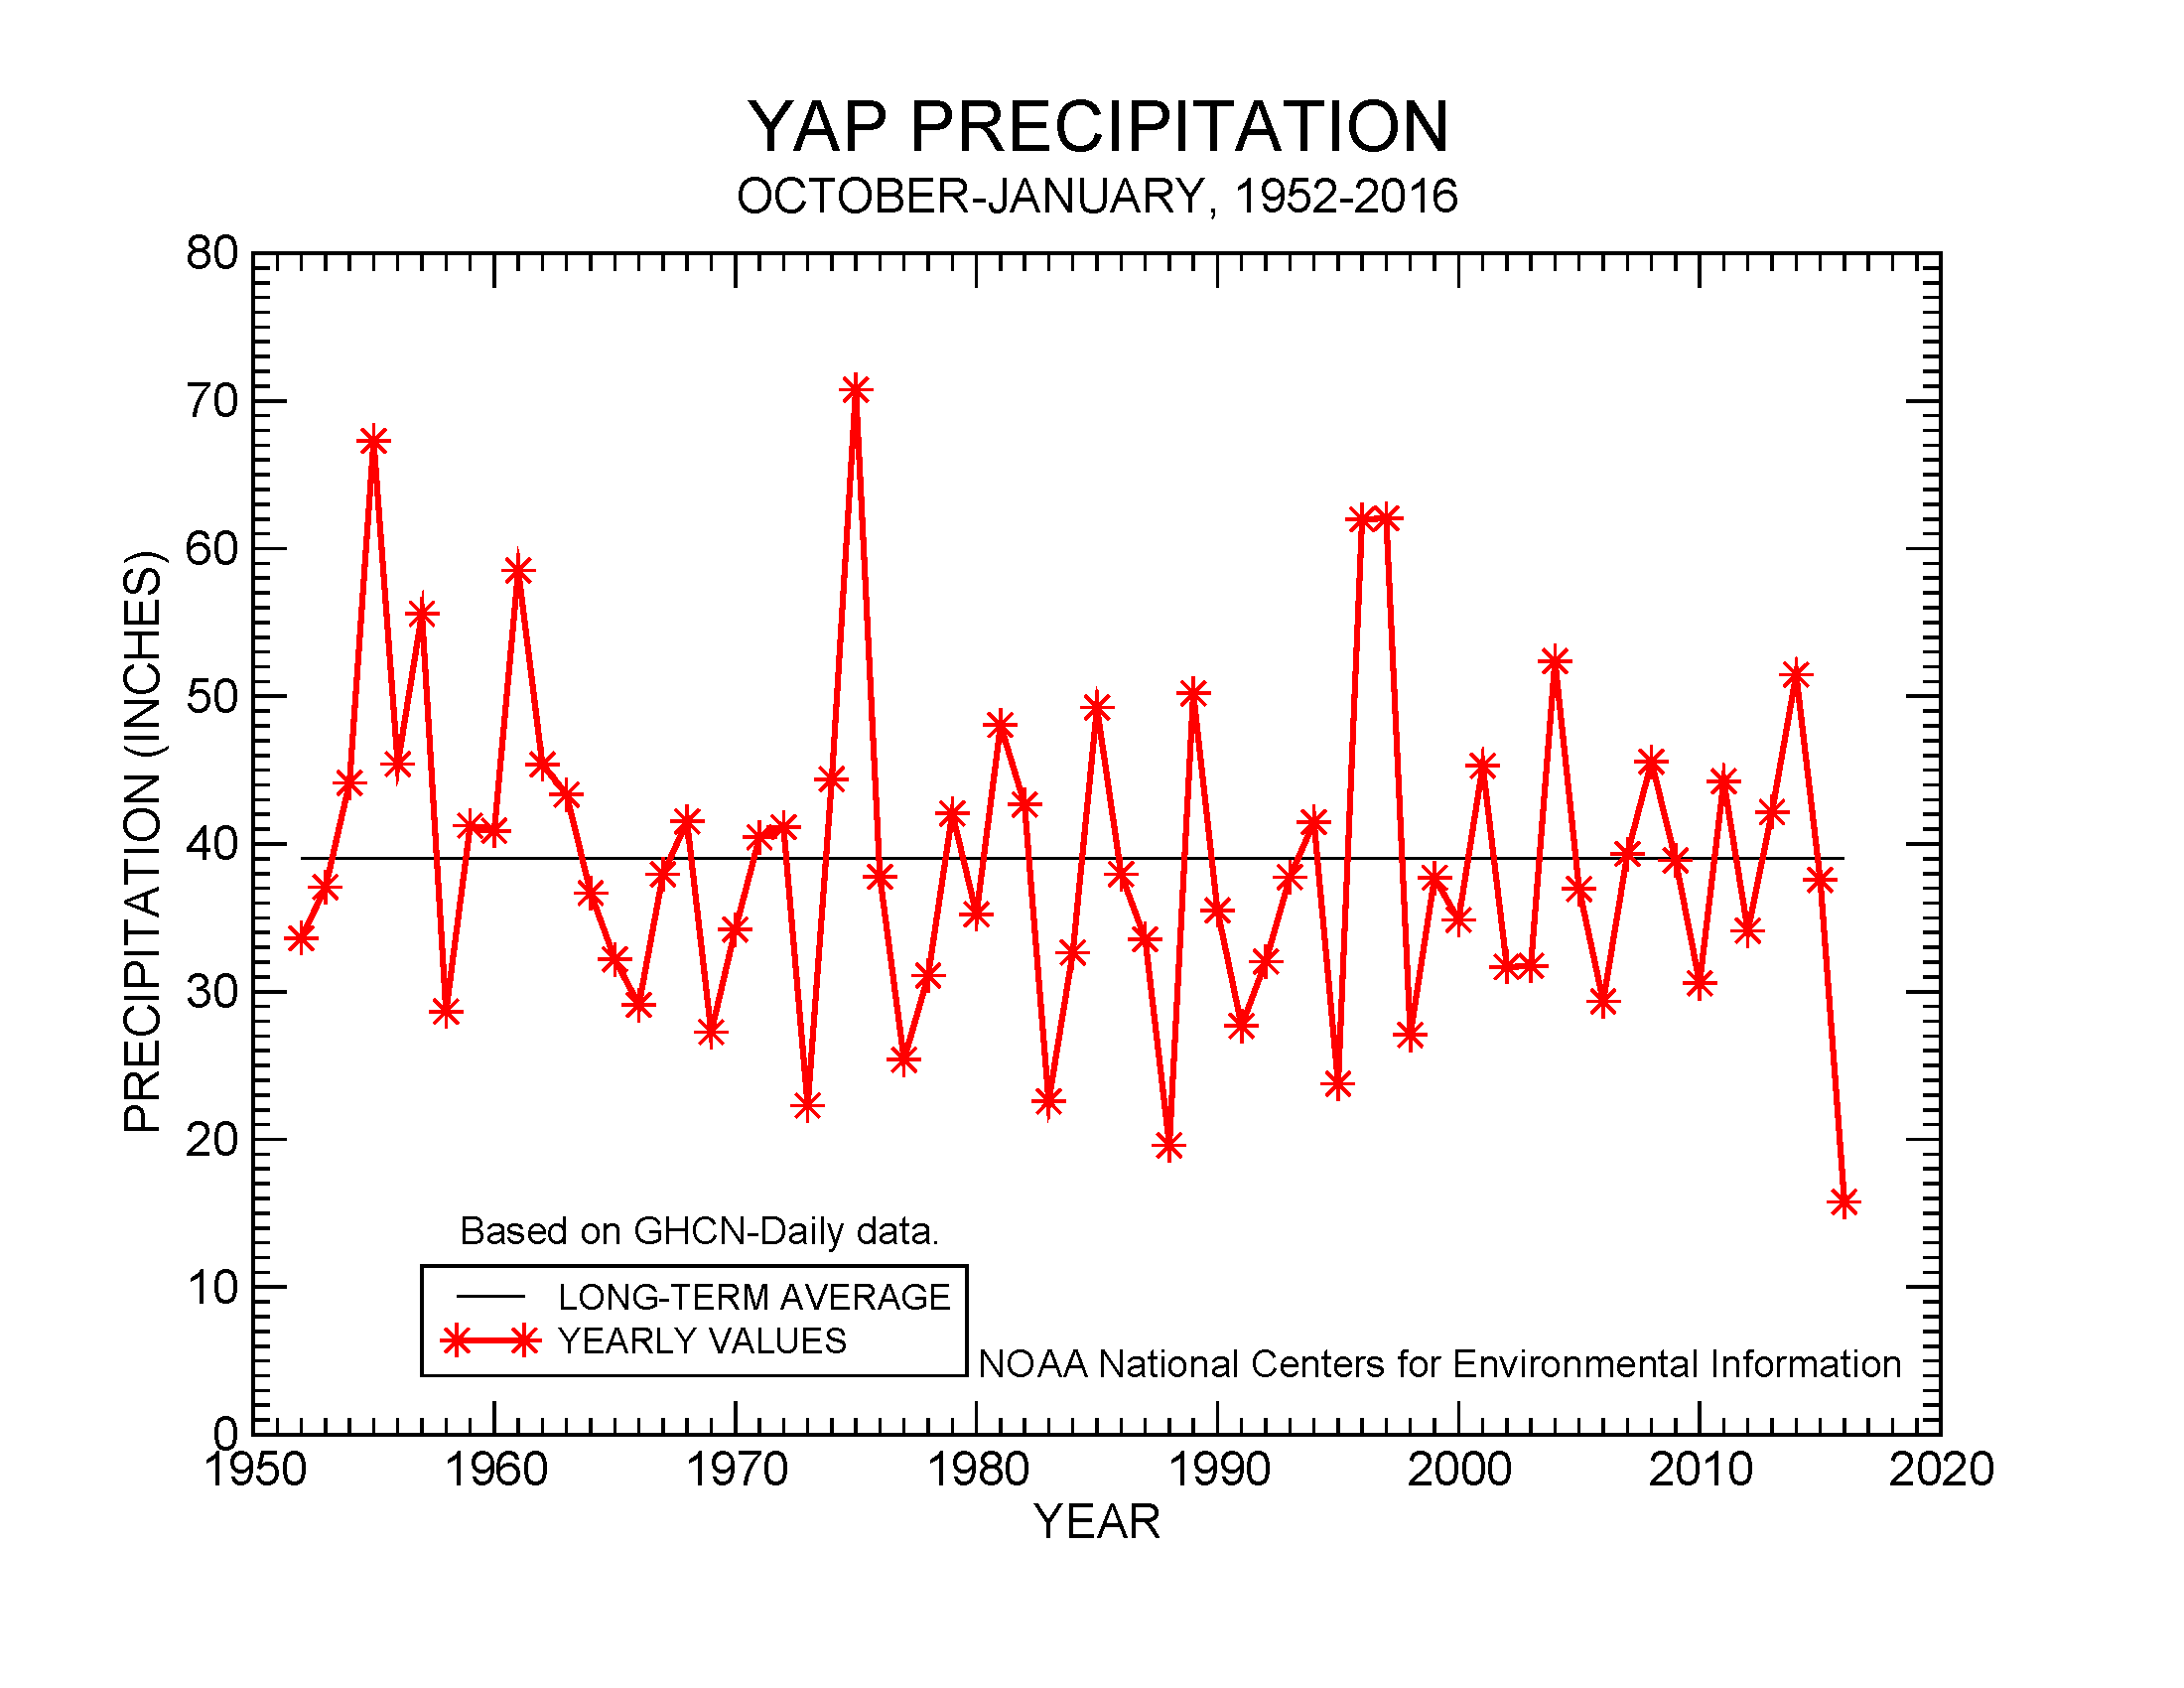 October-January precipitation for Yap, 1952-2016